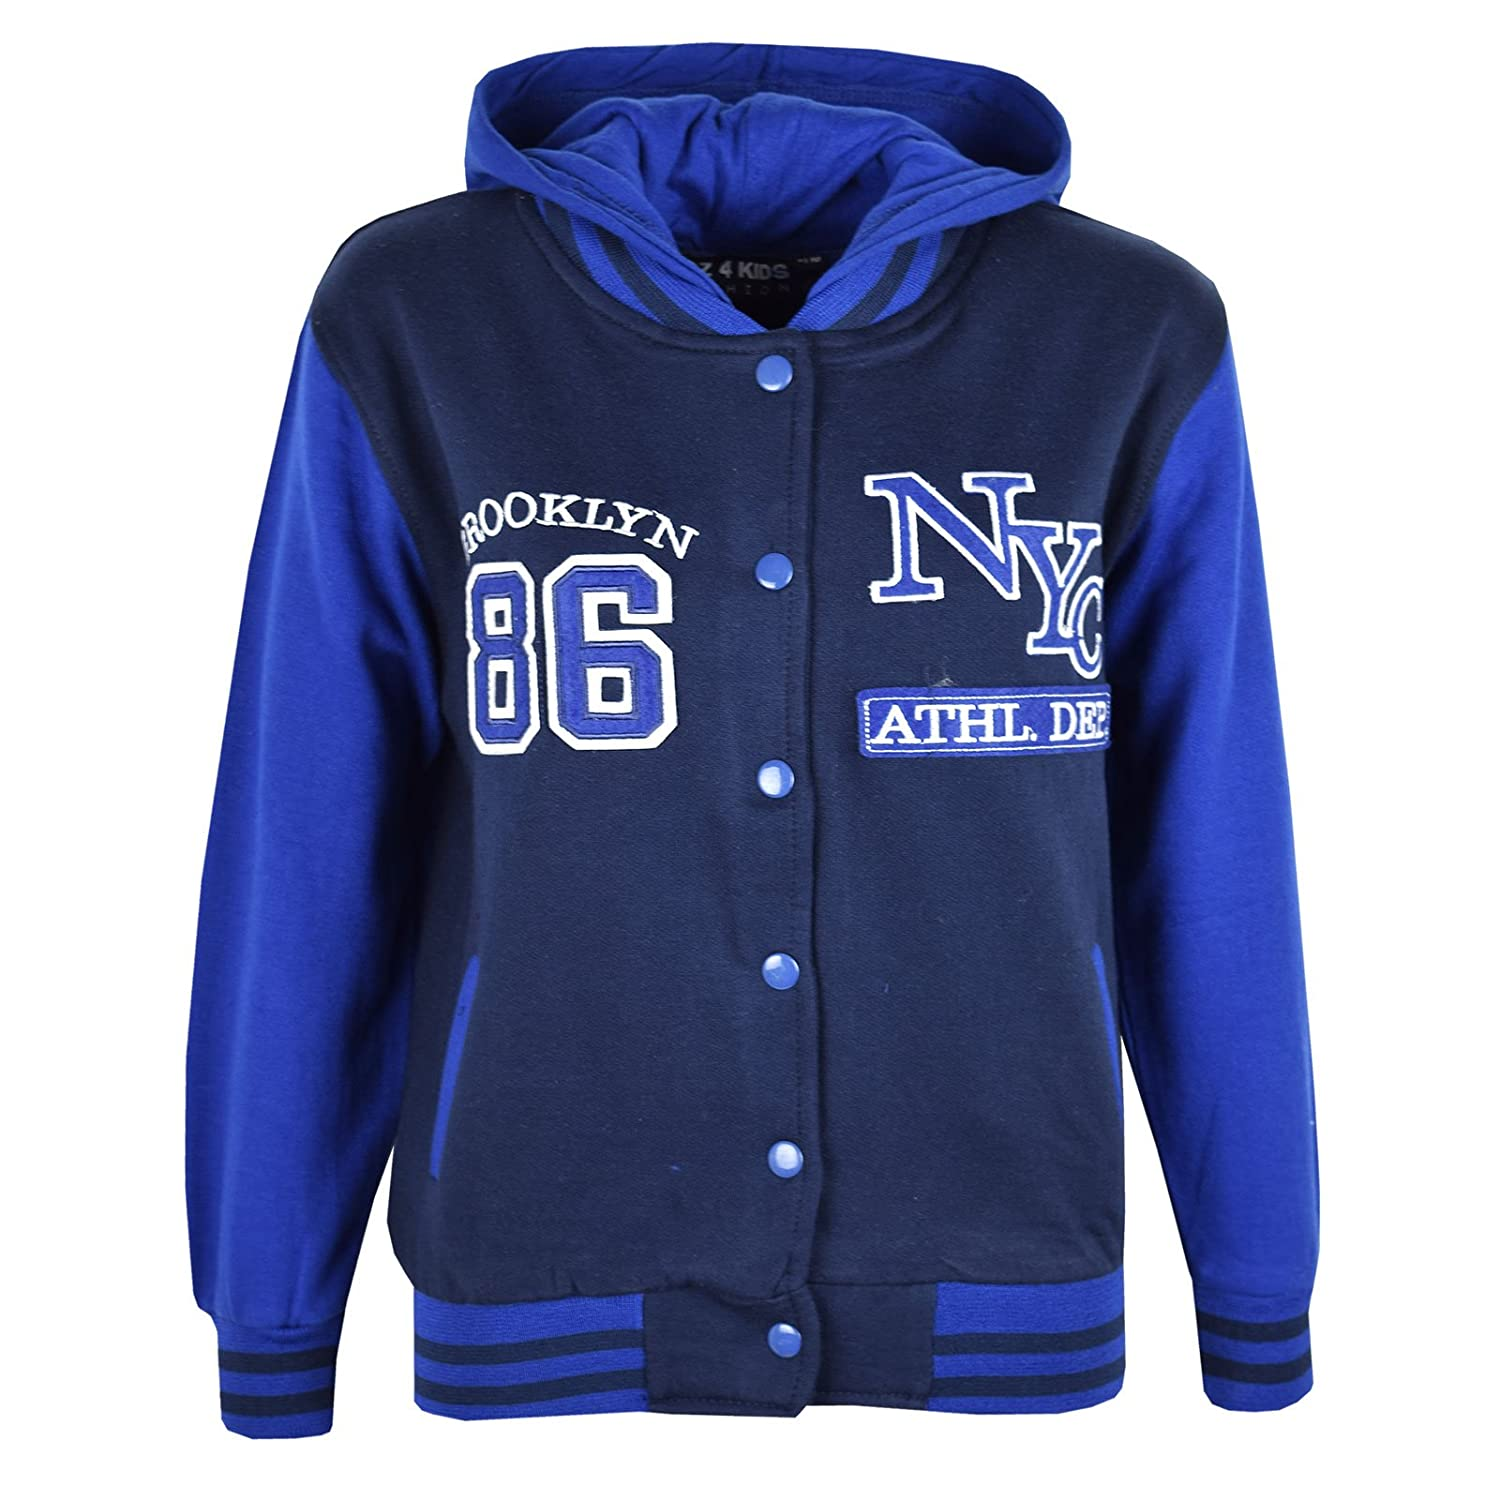 A2Z 4 Kids® Unisex Kids Girls Boys Baseball NY ATHLATIC Hooded ...